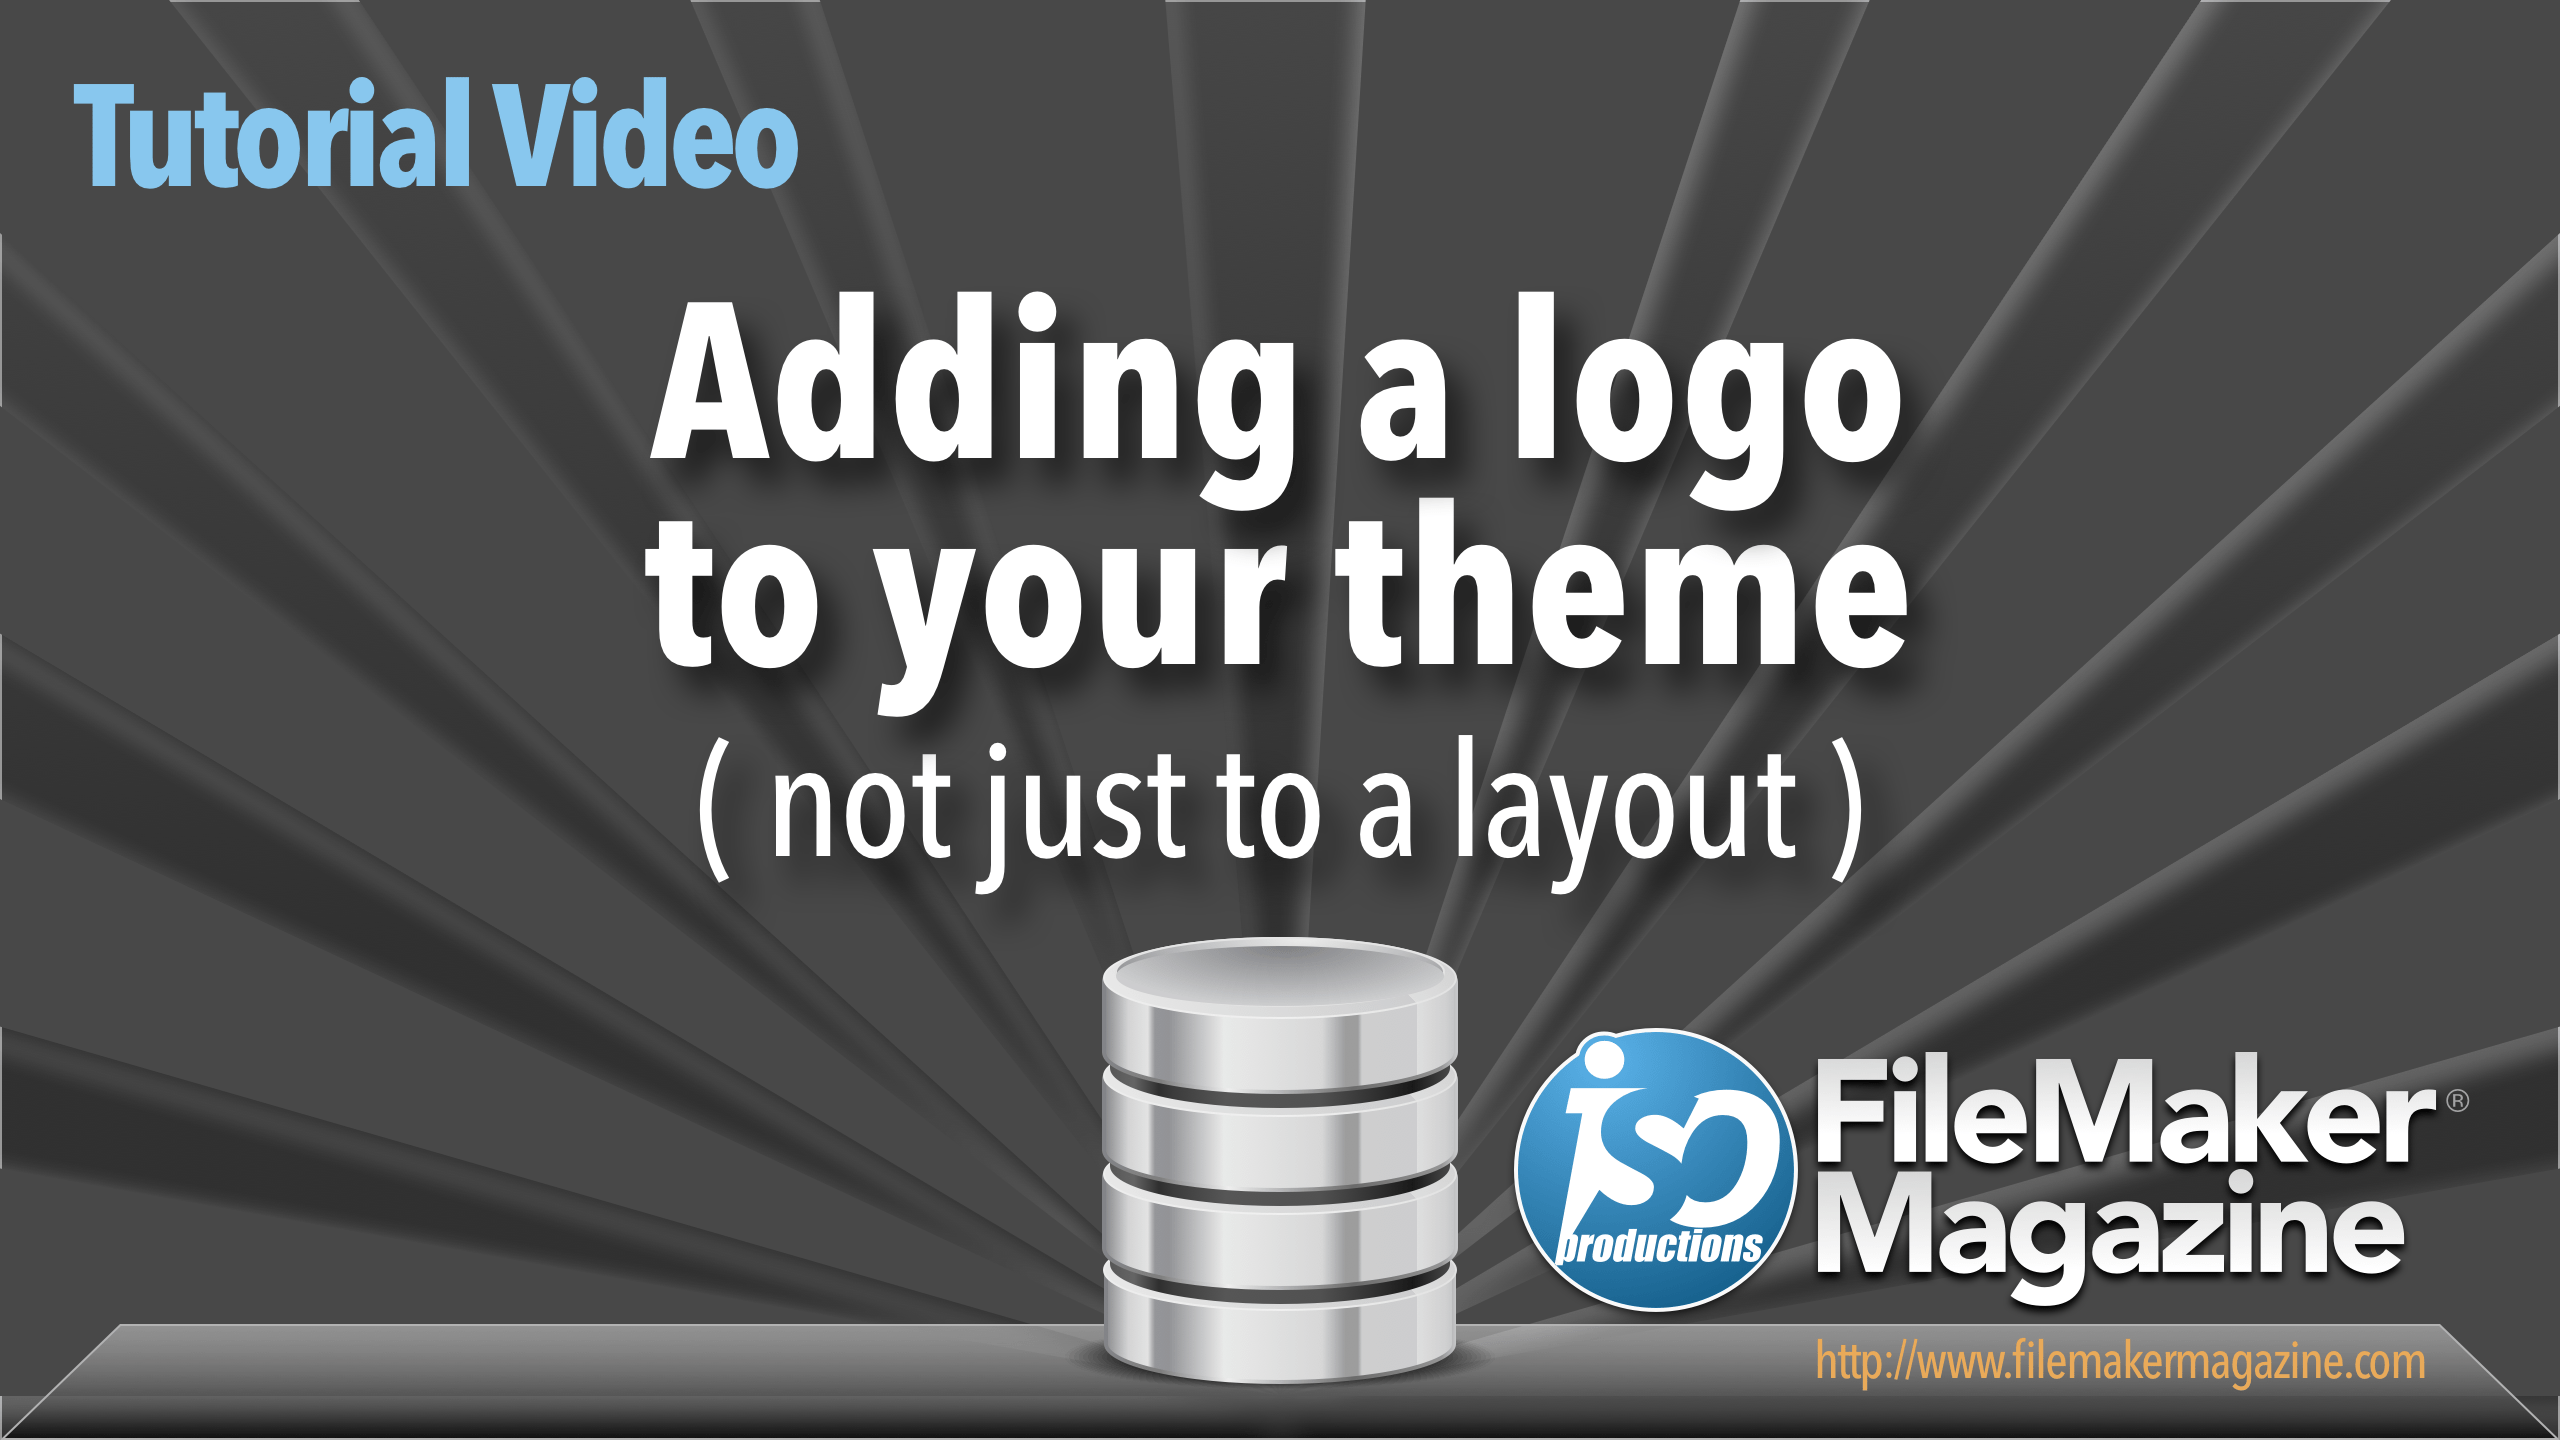 Adding a logo to your theme - ISO FileMaker Magazine